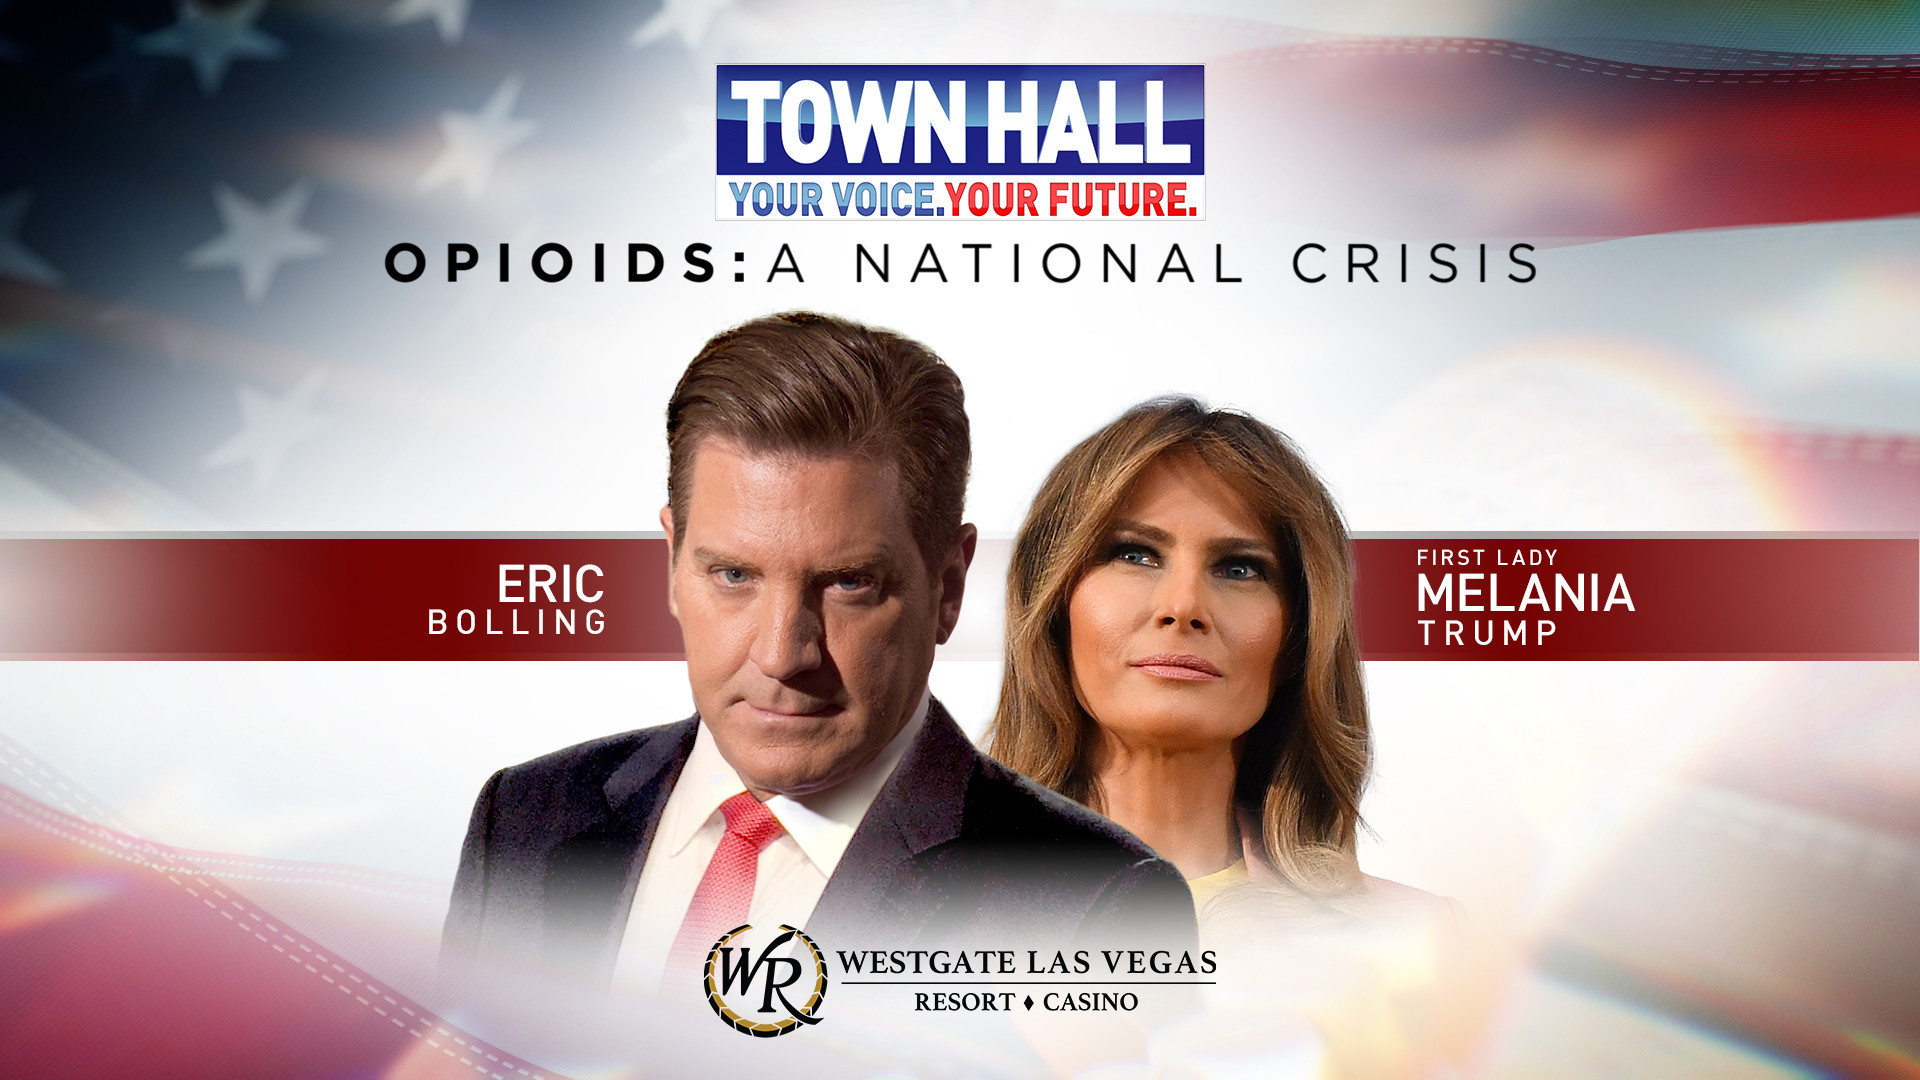 Melania Trump's town hall set for the International Theater at Westgate Las Vegas Resort & Casino